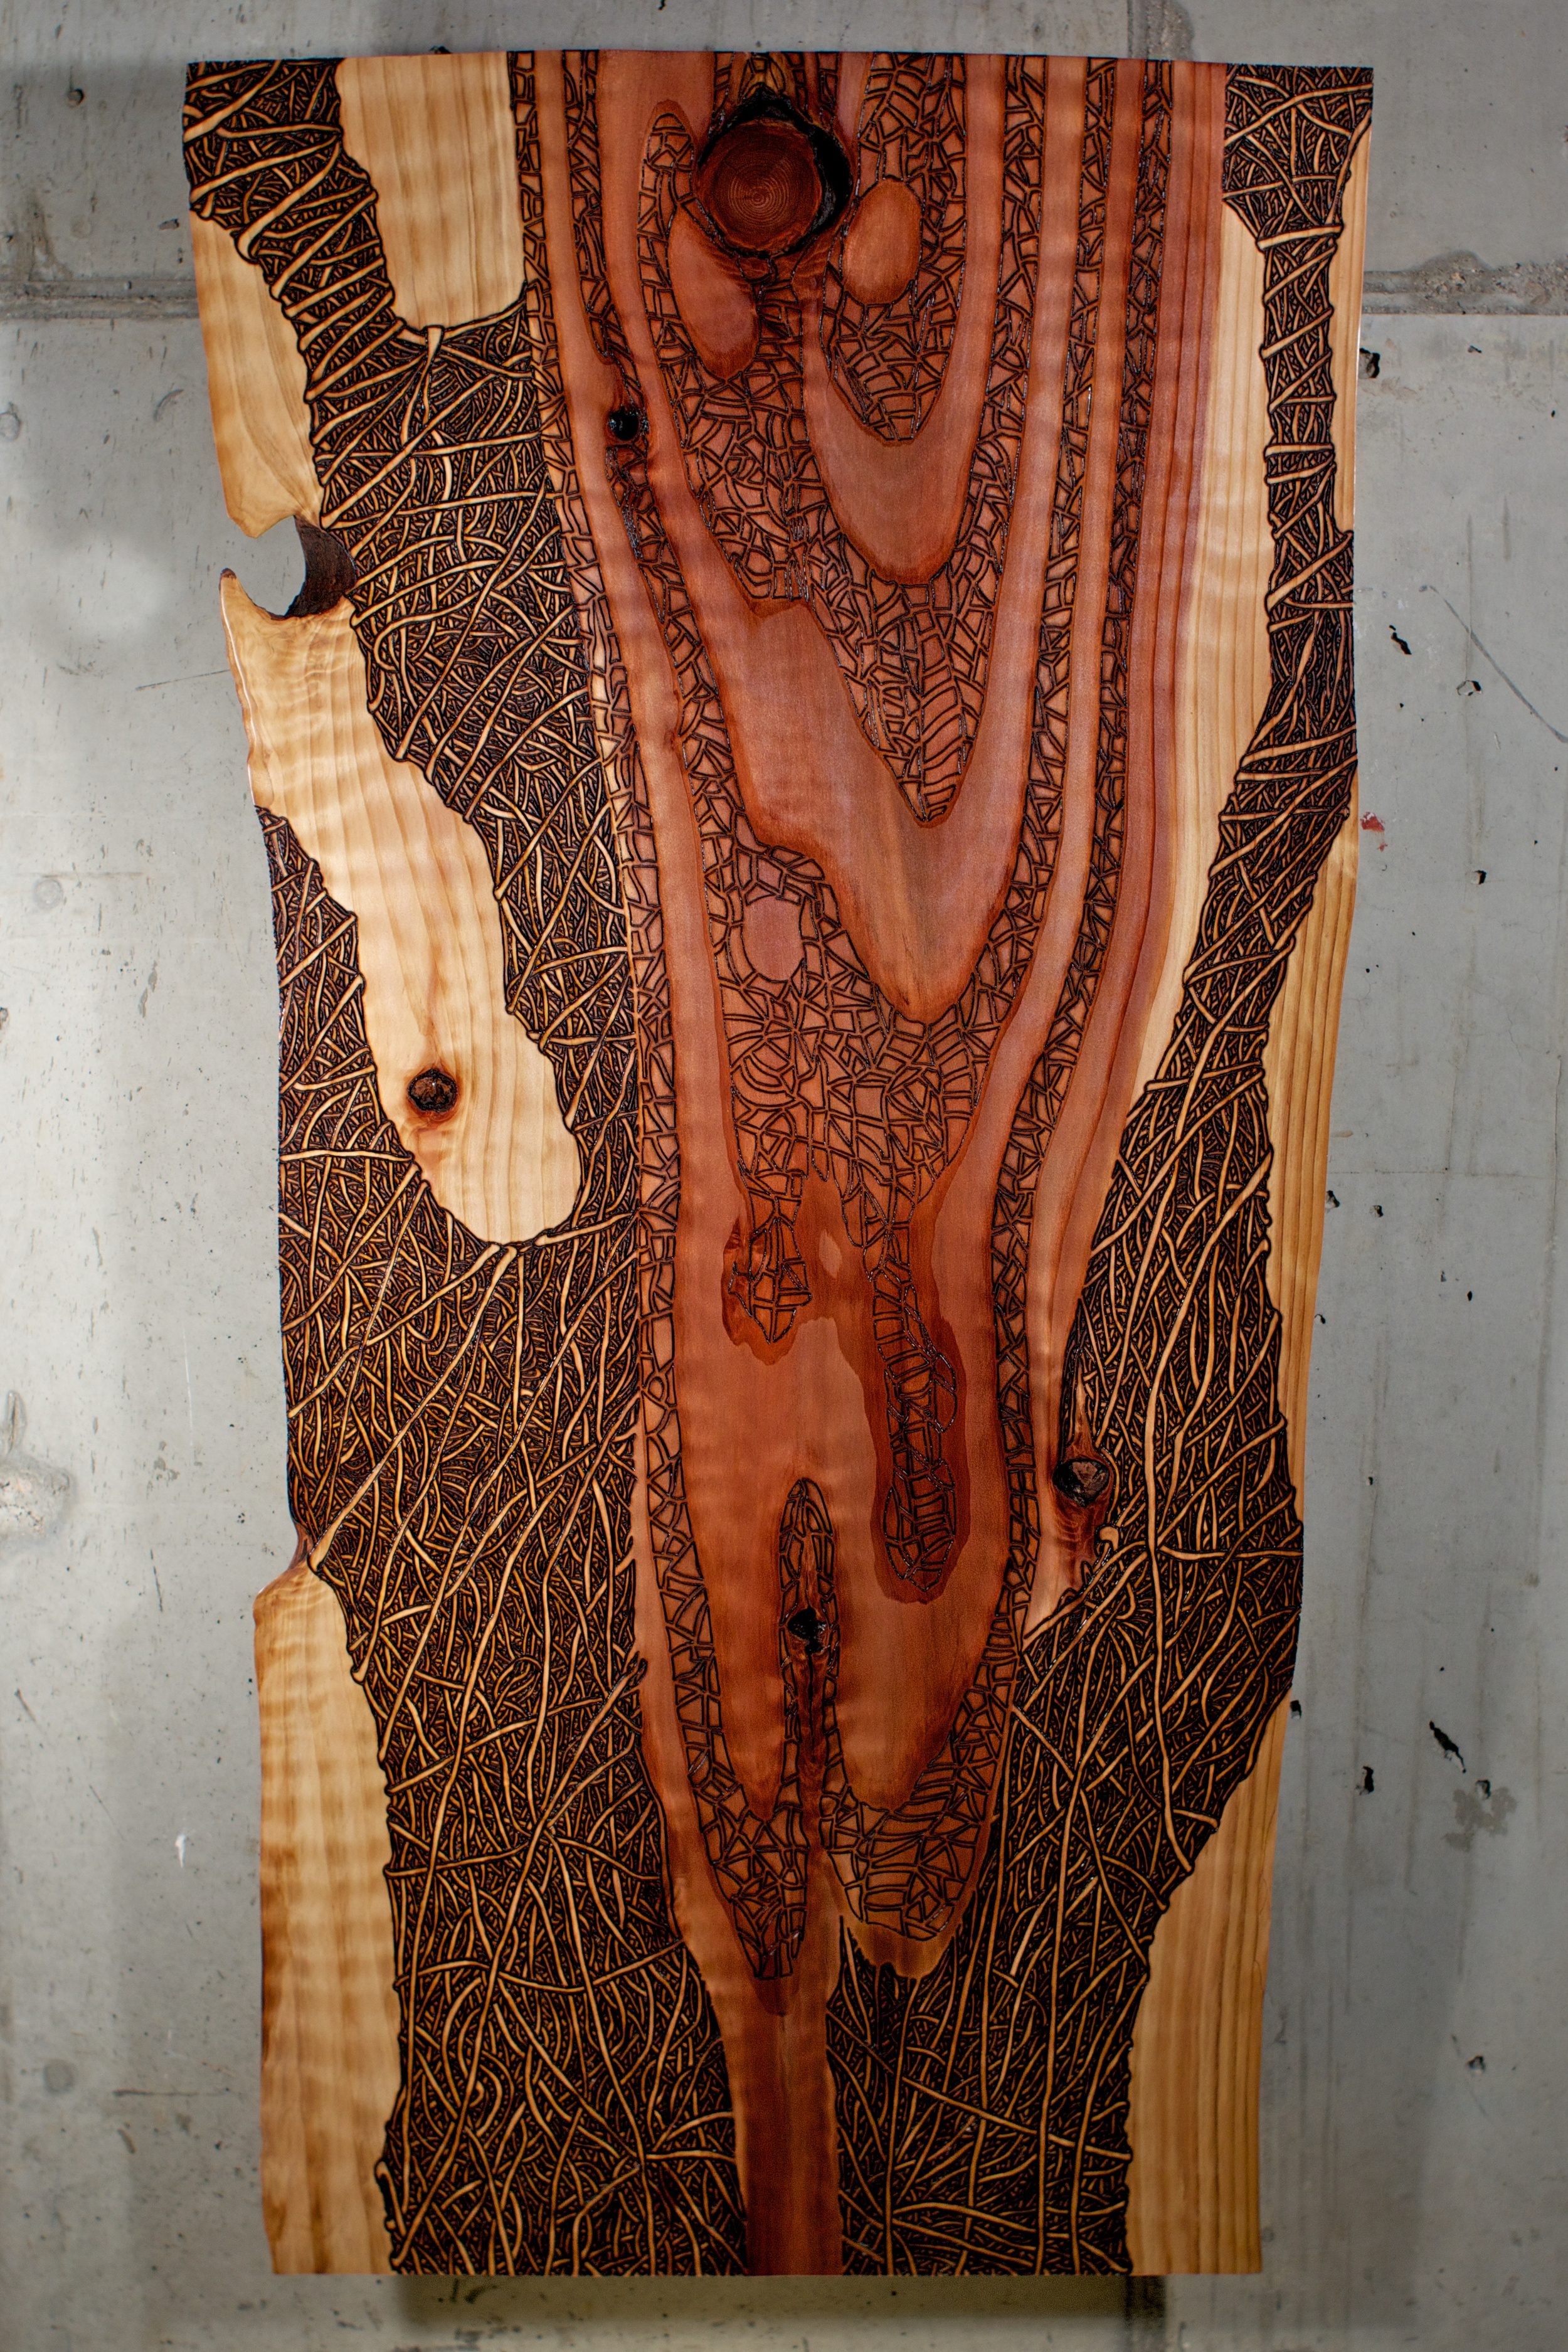 Red Wood (2016)  Wood Burning On Red Wood Live Edge Slab 43 in x 2 ½in x 21 ½in